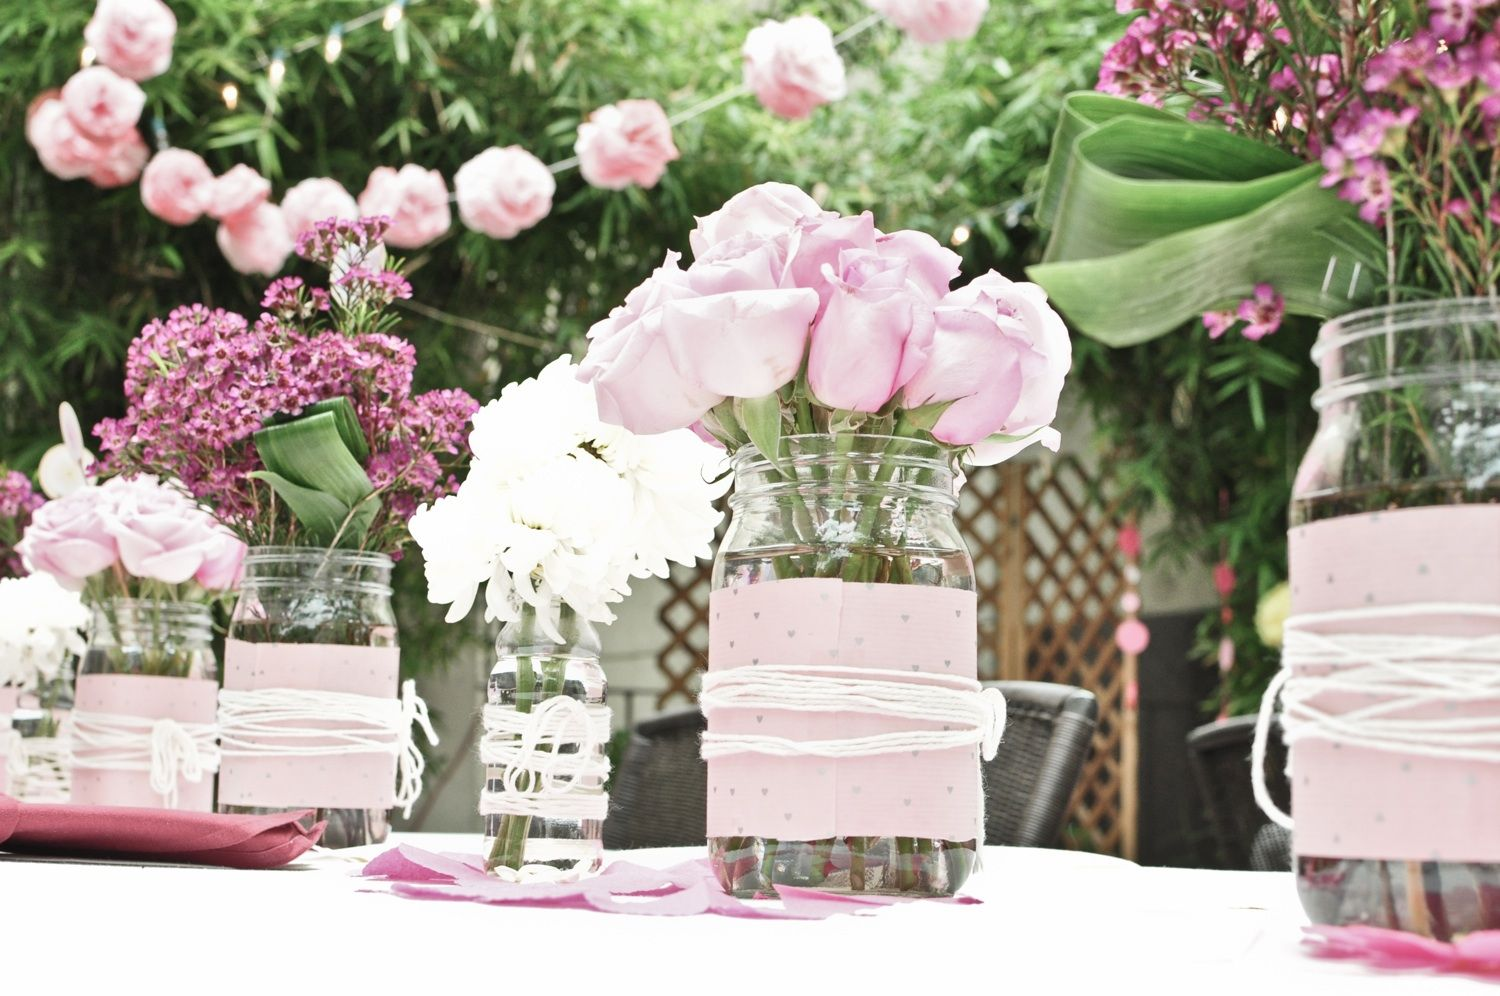 Diy wedding table decorations ideas  garden table decoration ideas  Google Search  SpringSummer